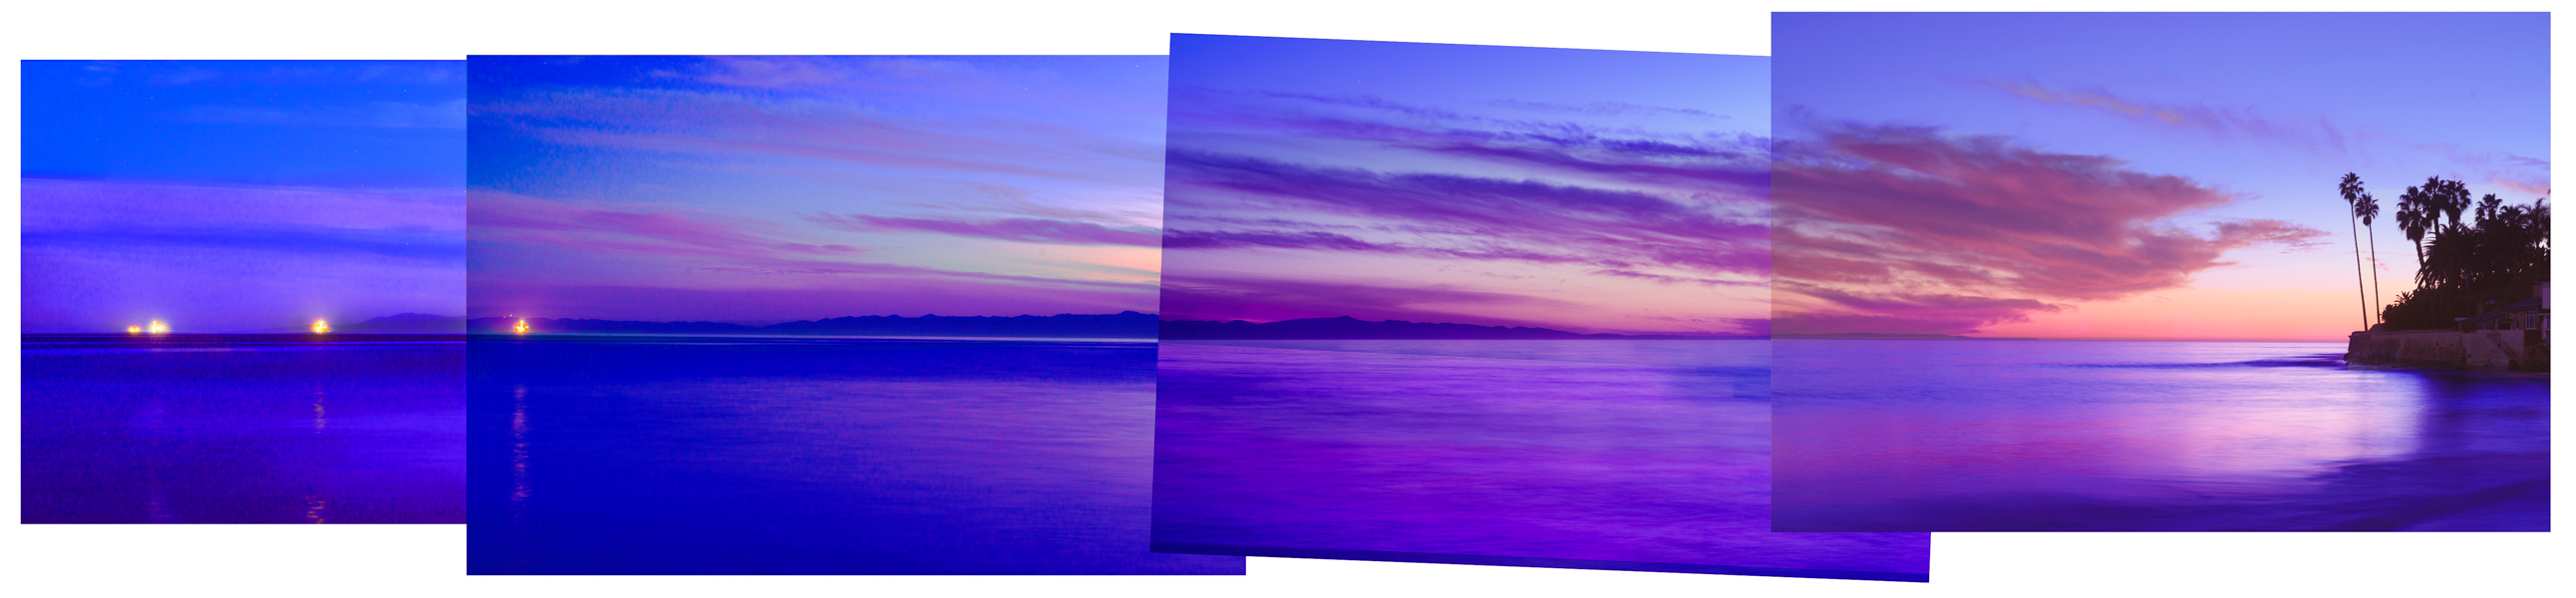 4 panels 20{quote} x 24{quote} equalling a native size of 300dpi at 20{quote} x 96{quote}  Digital capture edition limited to 3 - may be printed to a size that is site specific